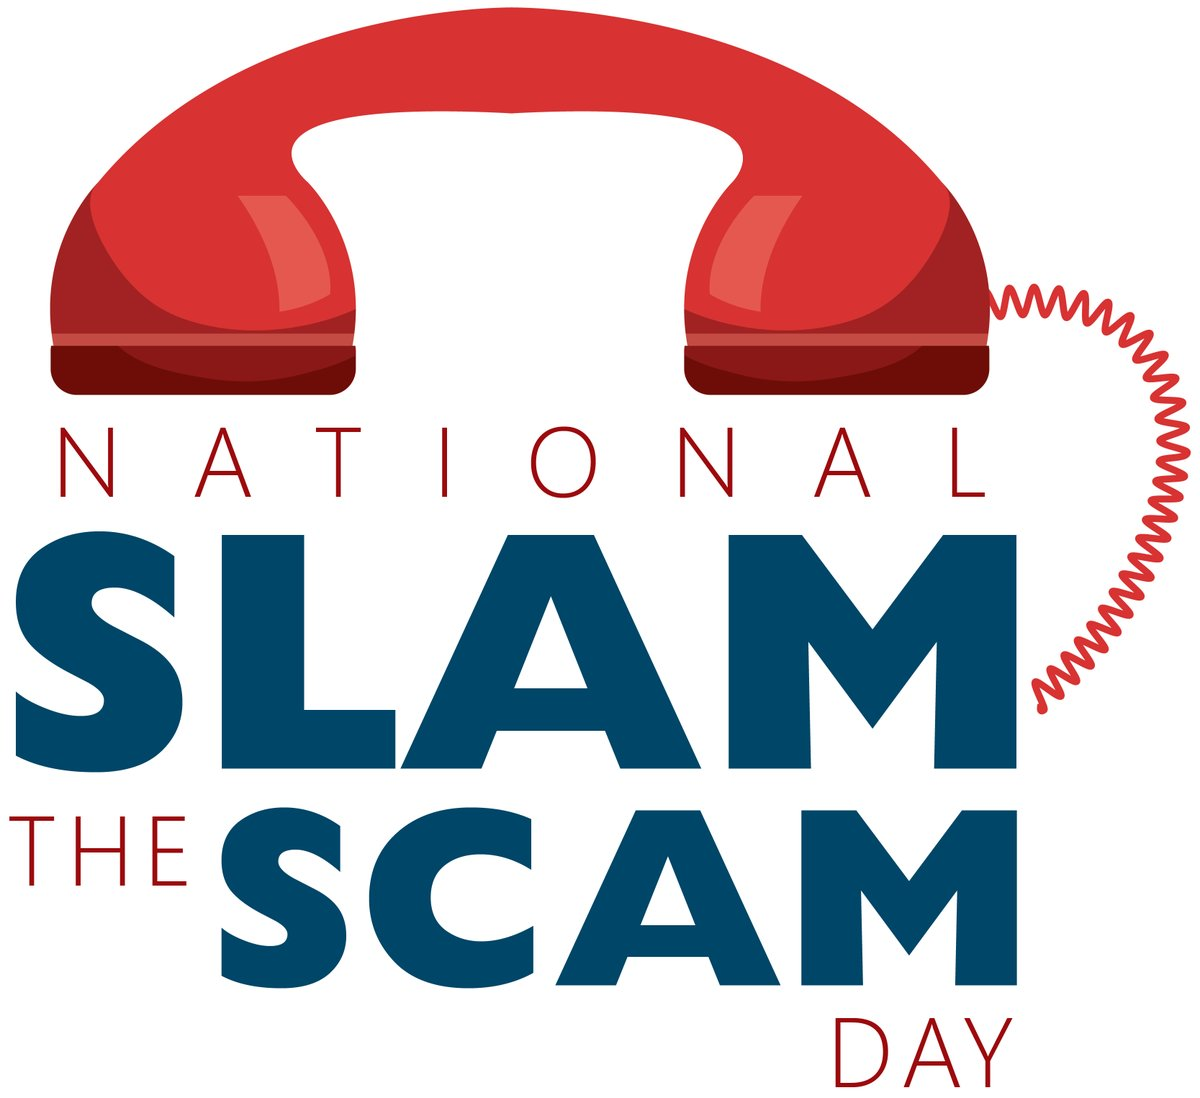 Join the #FBI and our federal partners for a Twitter chat today at 3 p.m. EST to learn how to protect yourself from scams. Follow @USAGov for tips from the @FTC, @SocialSecurity, and more government experts! #NCPW2021 #SlamTheScamDay